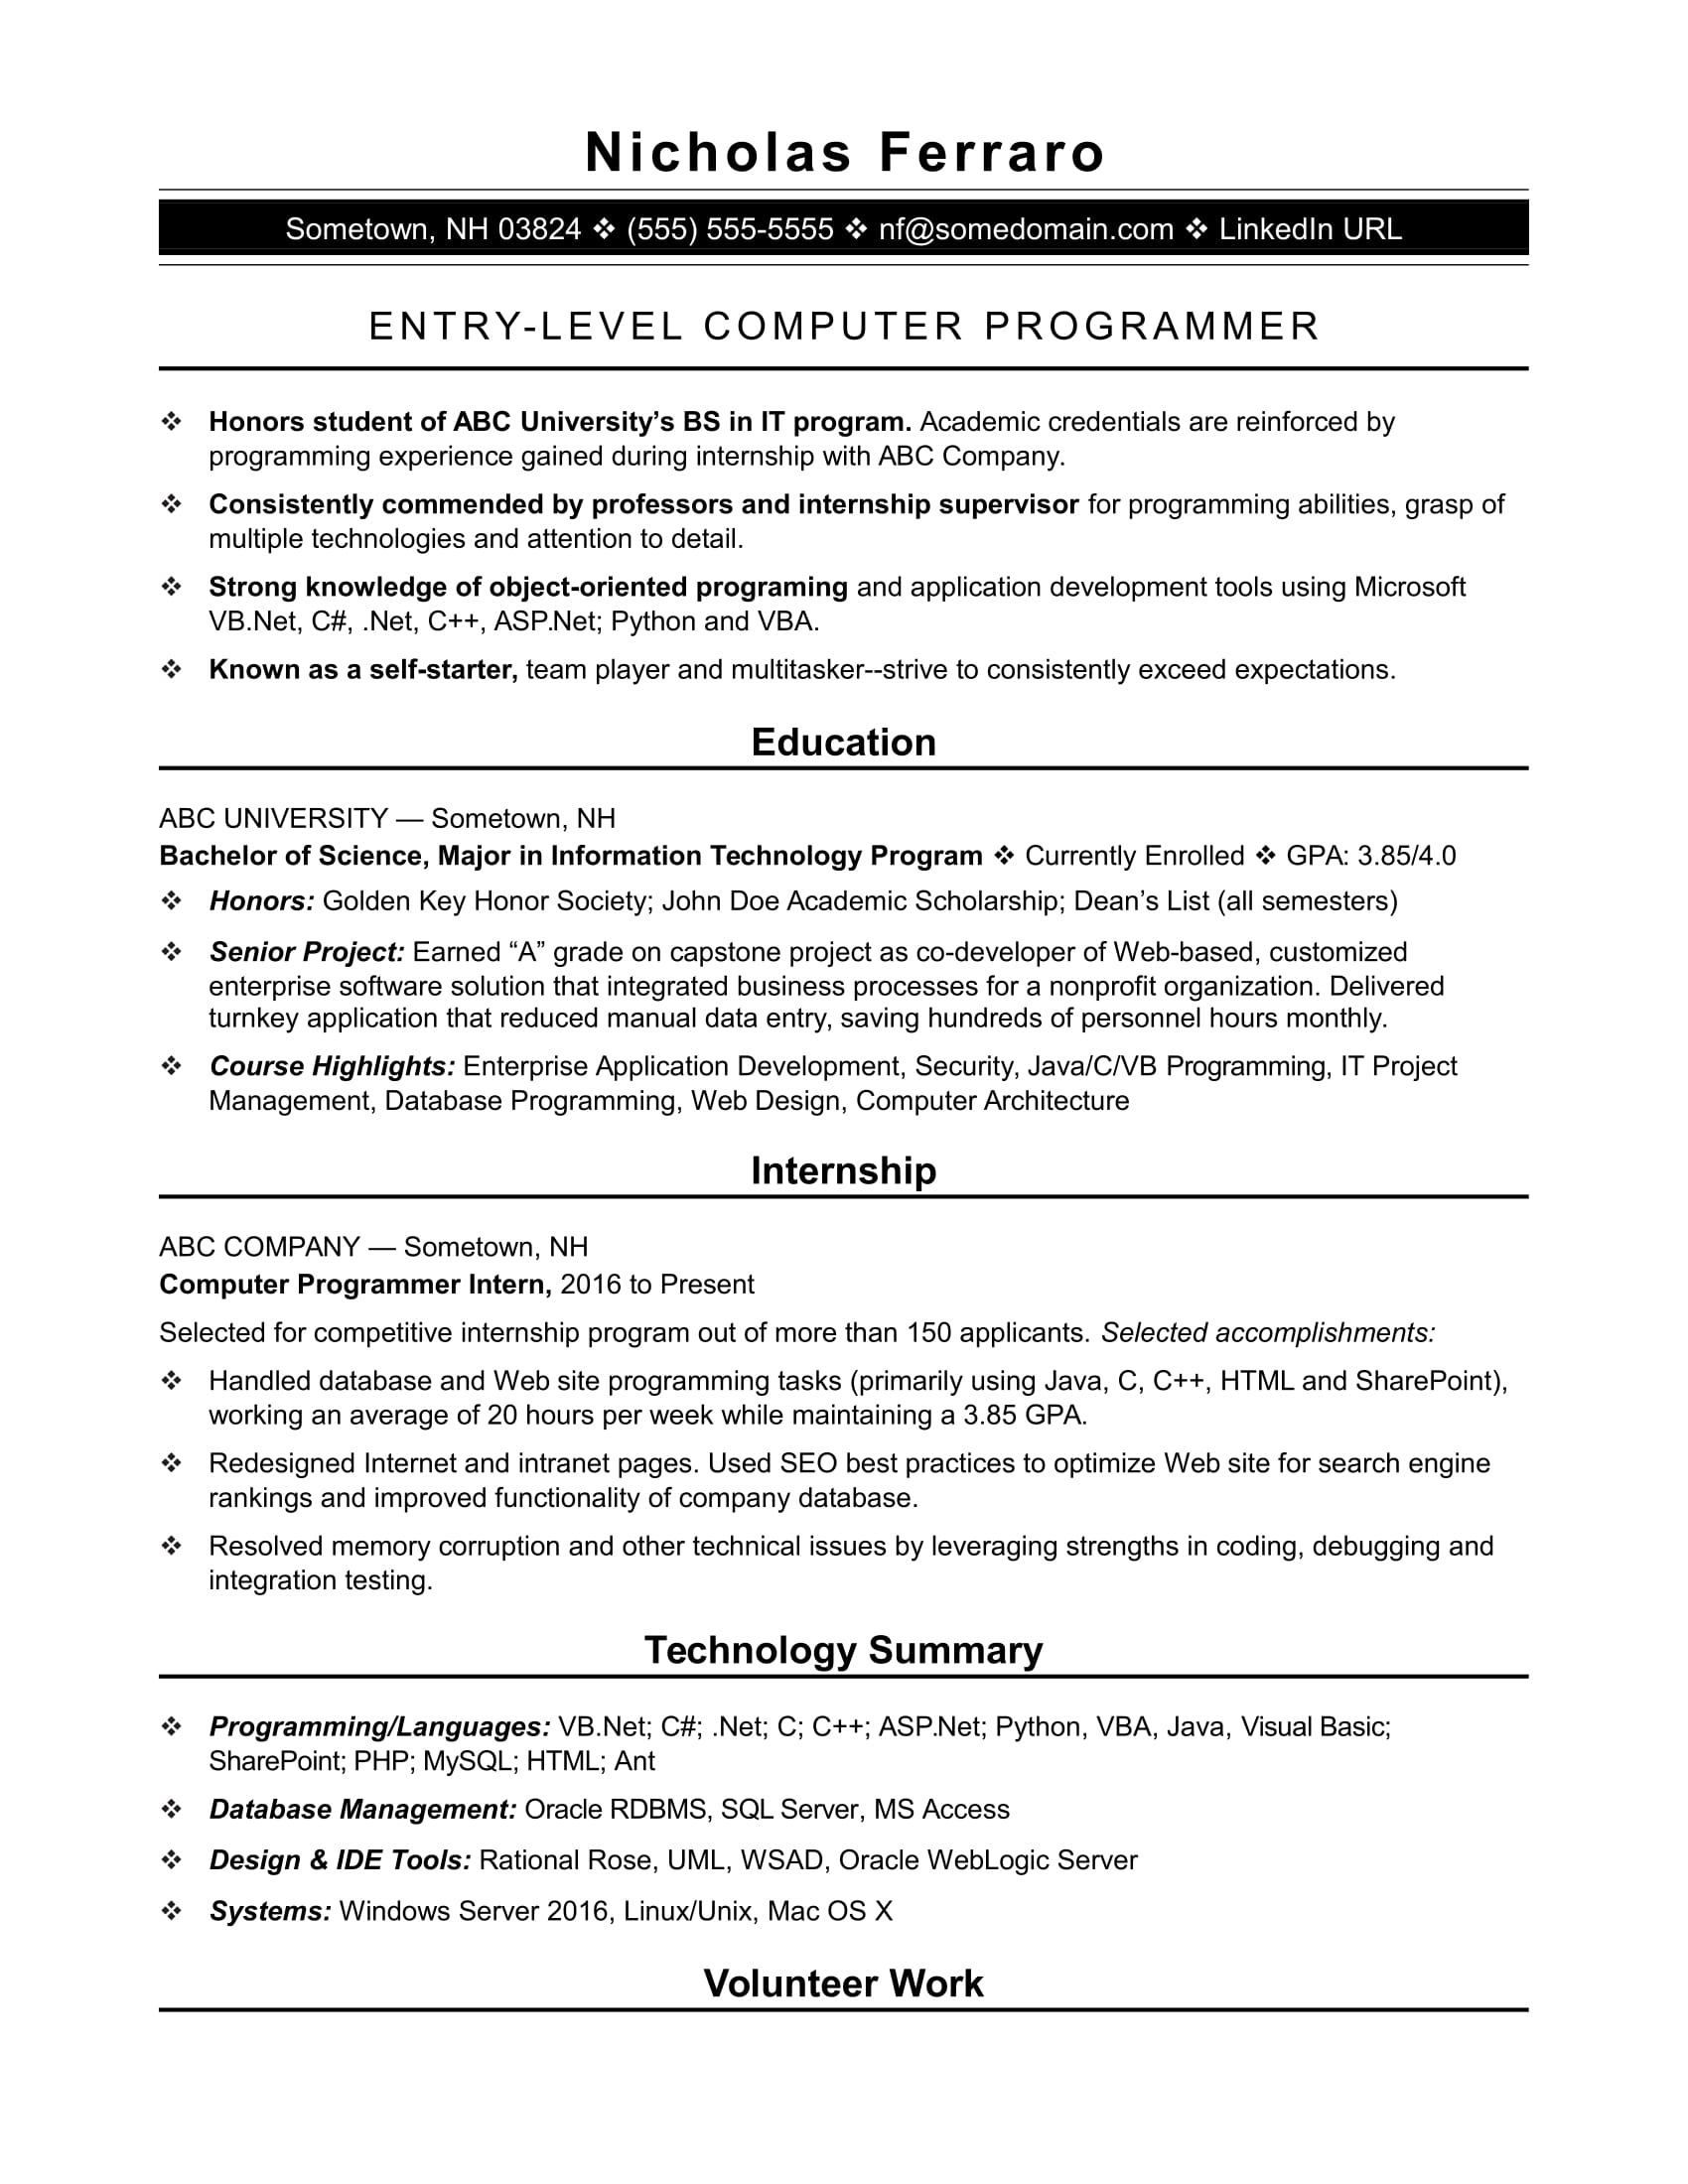 sample resume for an entry level computer programmer - Programmer Resume Sample